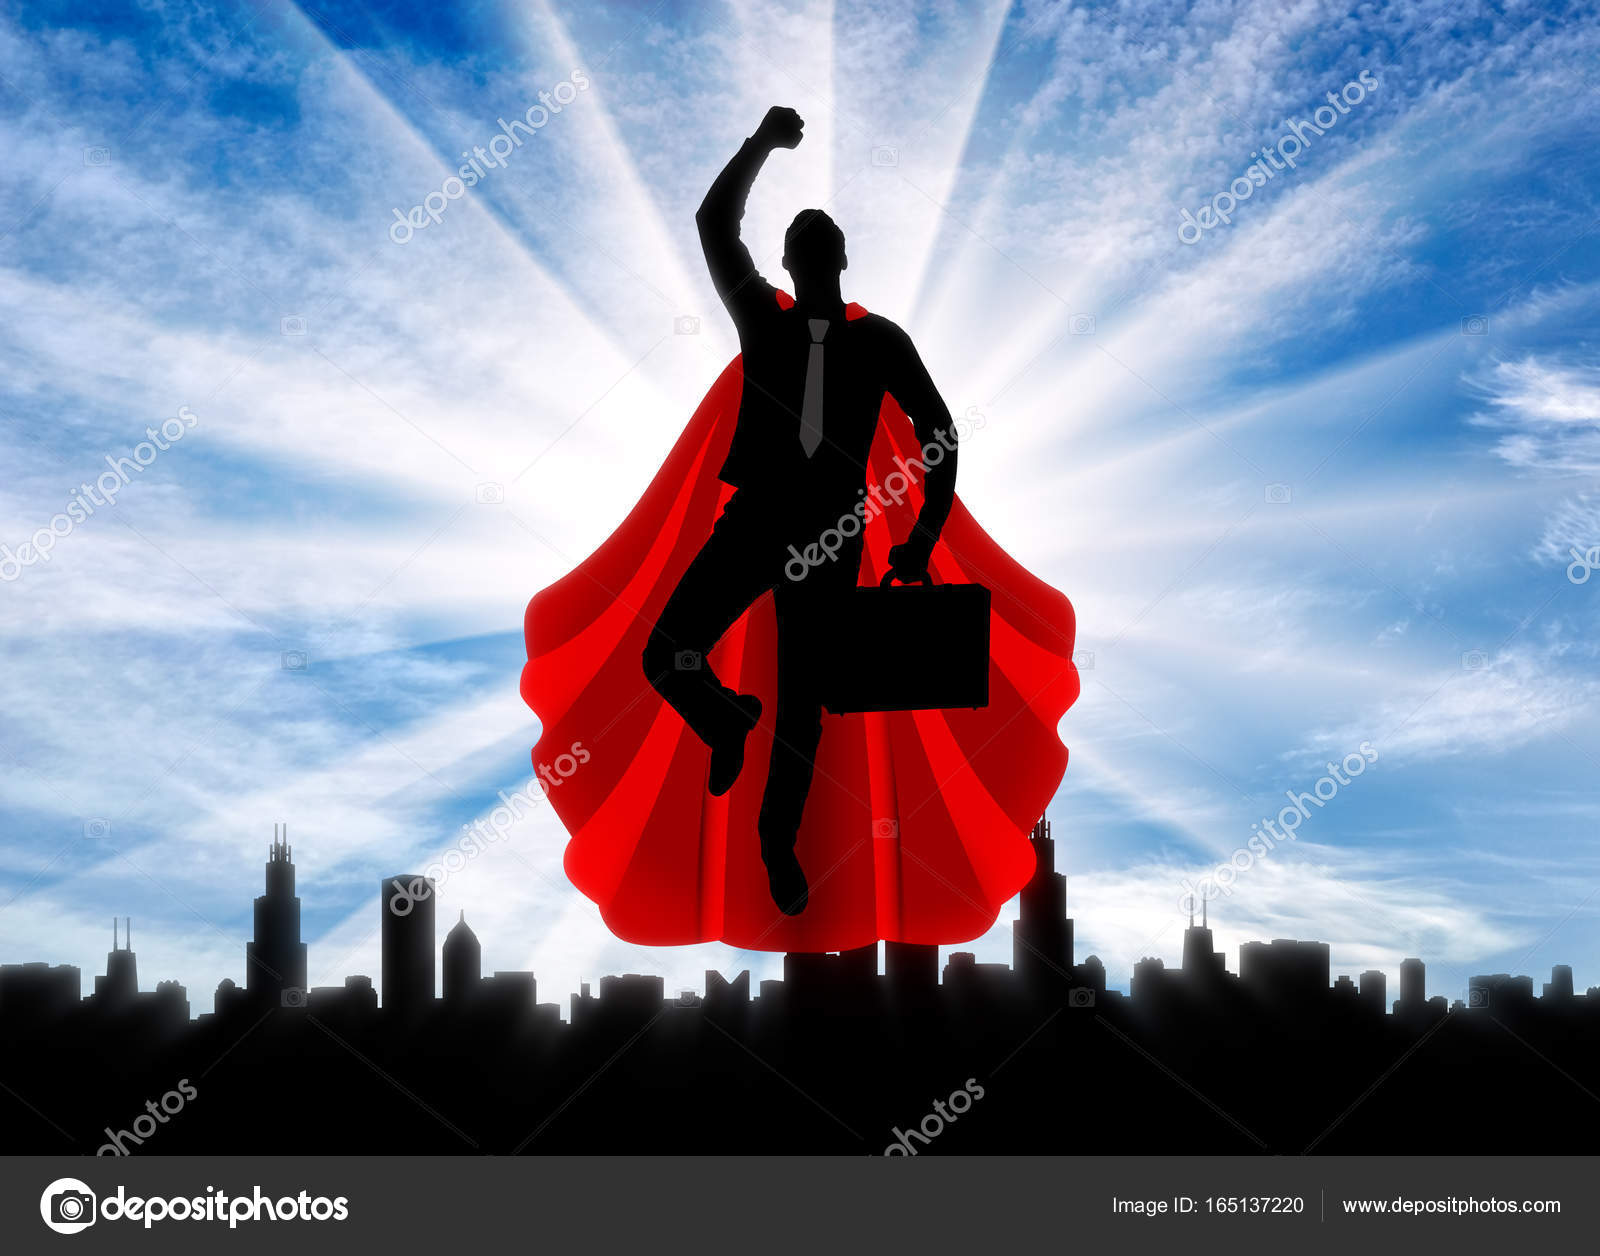 Superman businessman superhero stock photo prazisss 165137220 superman businessman superhero silhouette of a superman businessman with a briefcase flying in the sky over the city at dawn photo by prazisss publicscrutiny Images